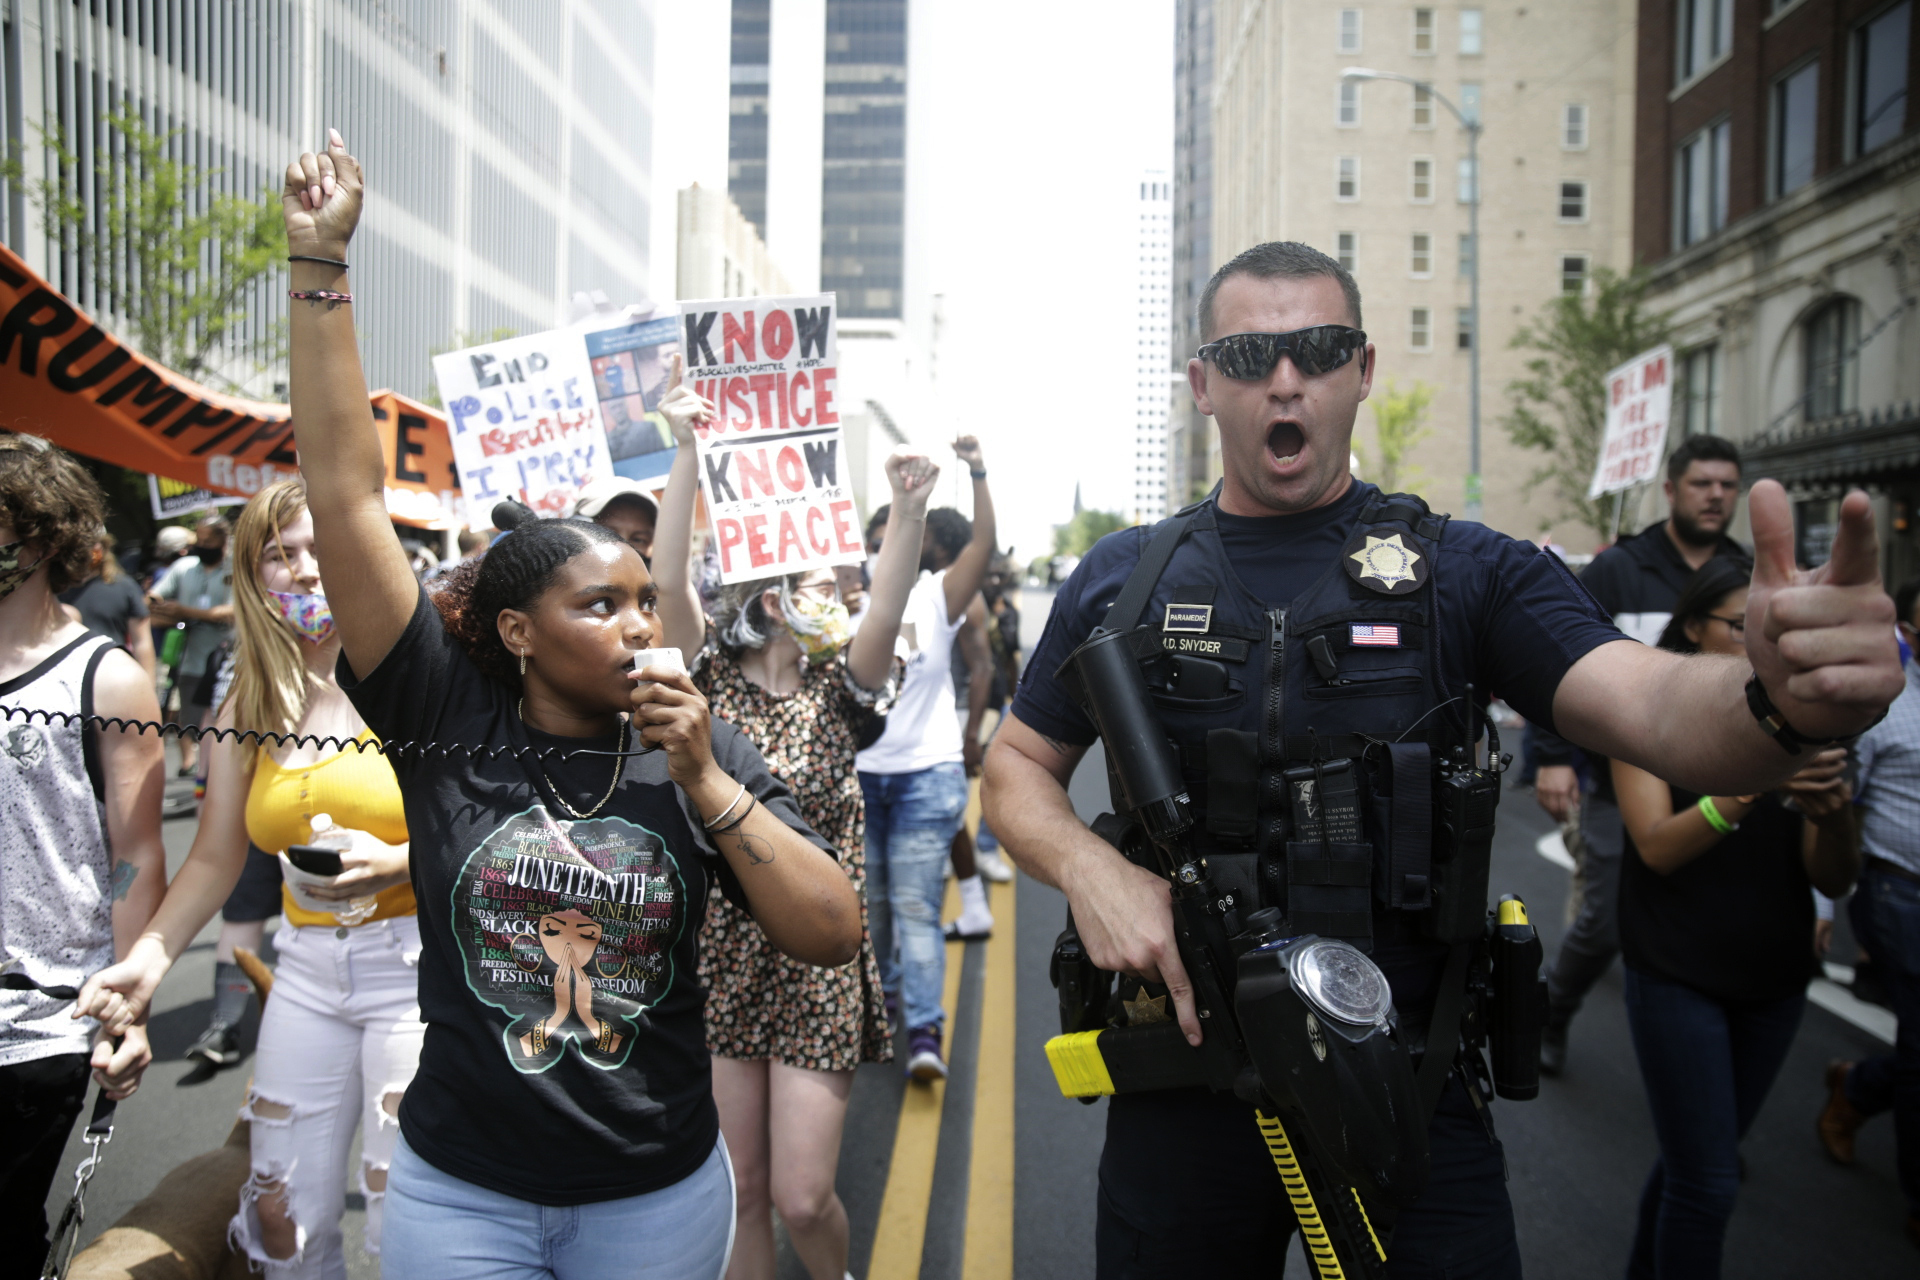 """FILE - In this Saturday, June 20, 2020 file photo, a Tulsa Police officer works near a Black Lives Matter event a few blocks away from the BOK Center before a rally by President Donald Trump in Tulsa, Okla. In a 2018 Gallup-Tulsa Citivoice Index poll designed to measure quality of life issues, only 18% of Black residents said they trust police a lot, compared to 49% of white residents, and 46% of Black Tulsans said they trust the Police Department """"not at all"""" or """"not much,"""" compared to 16% of whites. (Mike Simons/Tulsa World via AP, File)"""